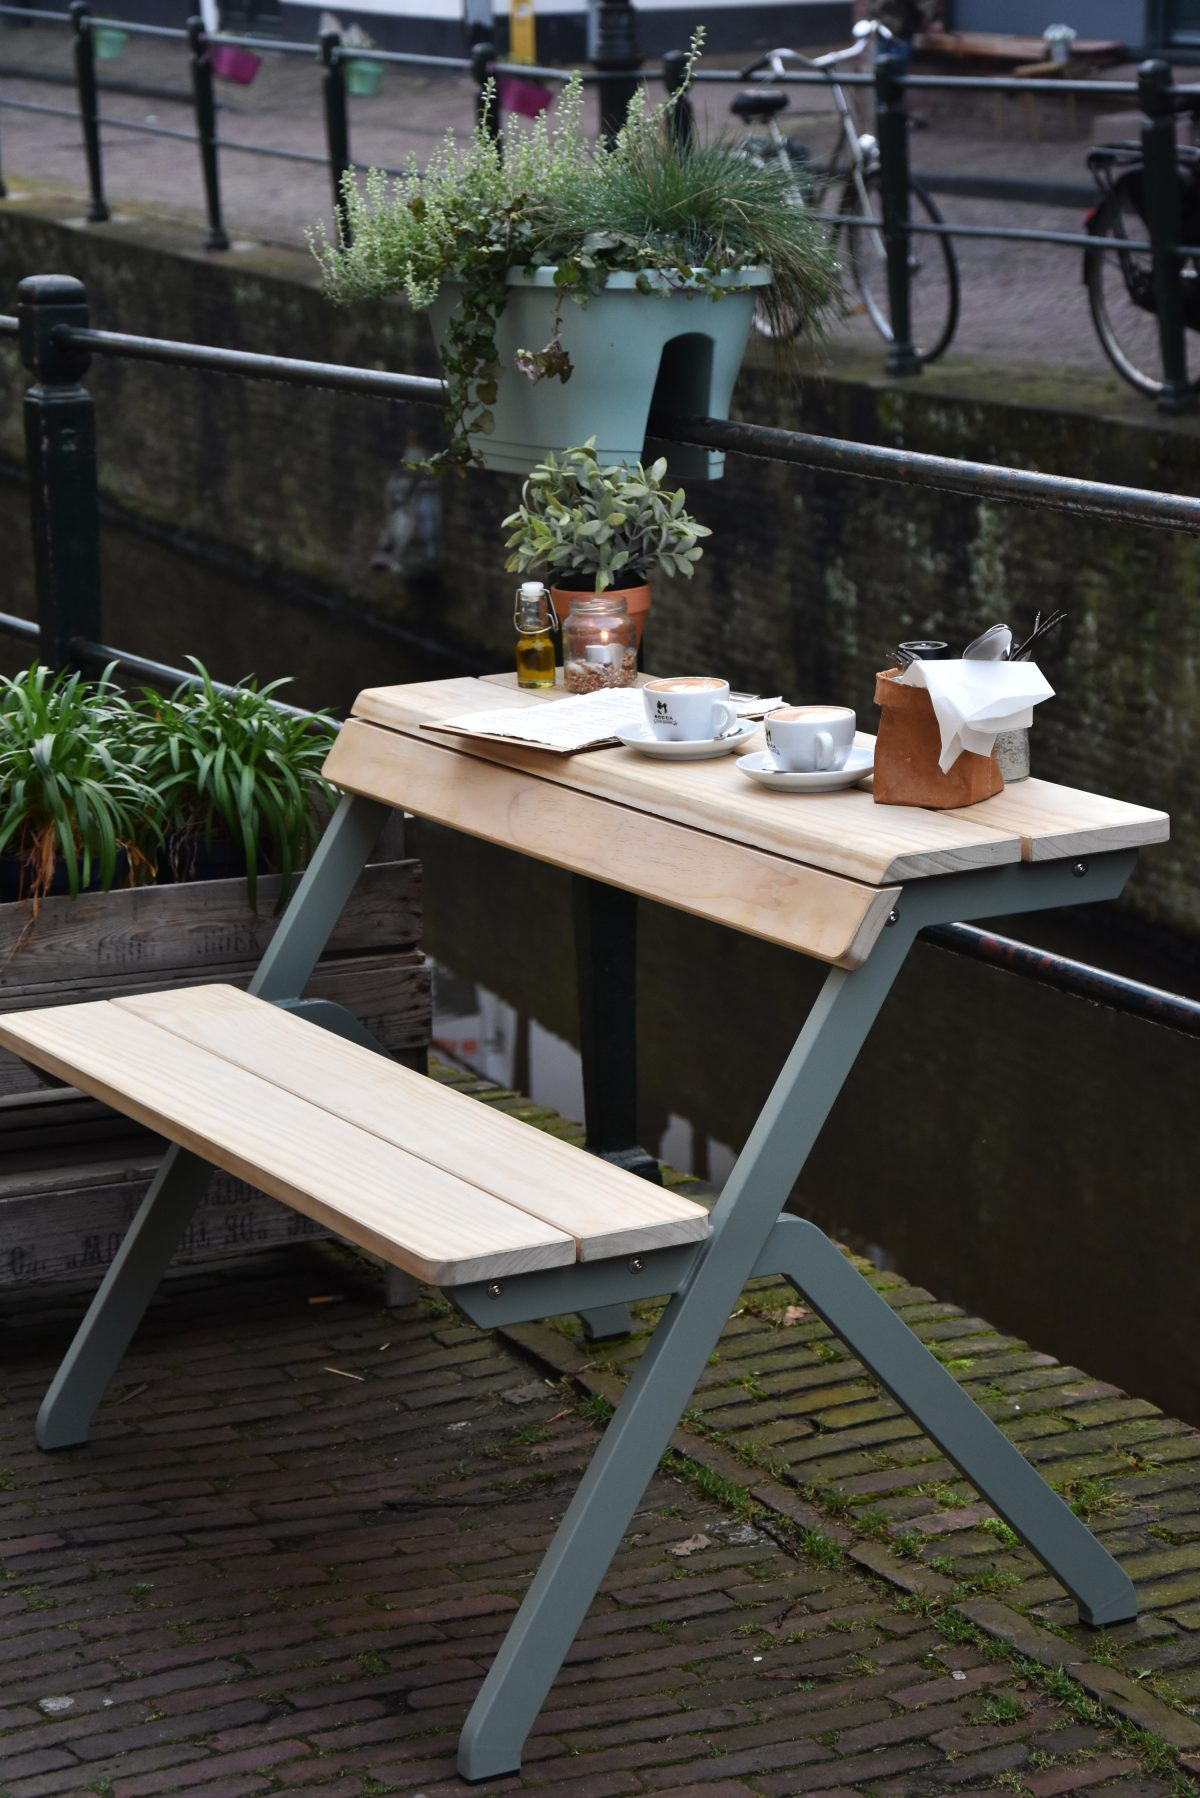 Weltevree Tablebench Exclusief Dutch Design Outdoor Tafel Bankje